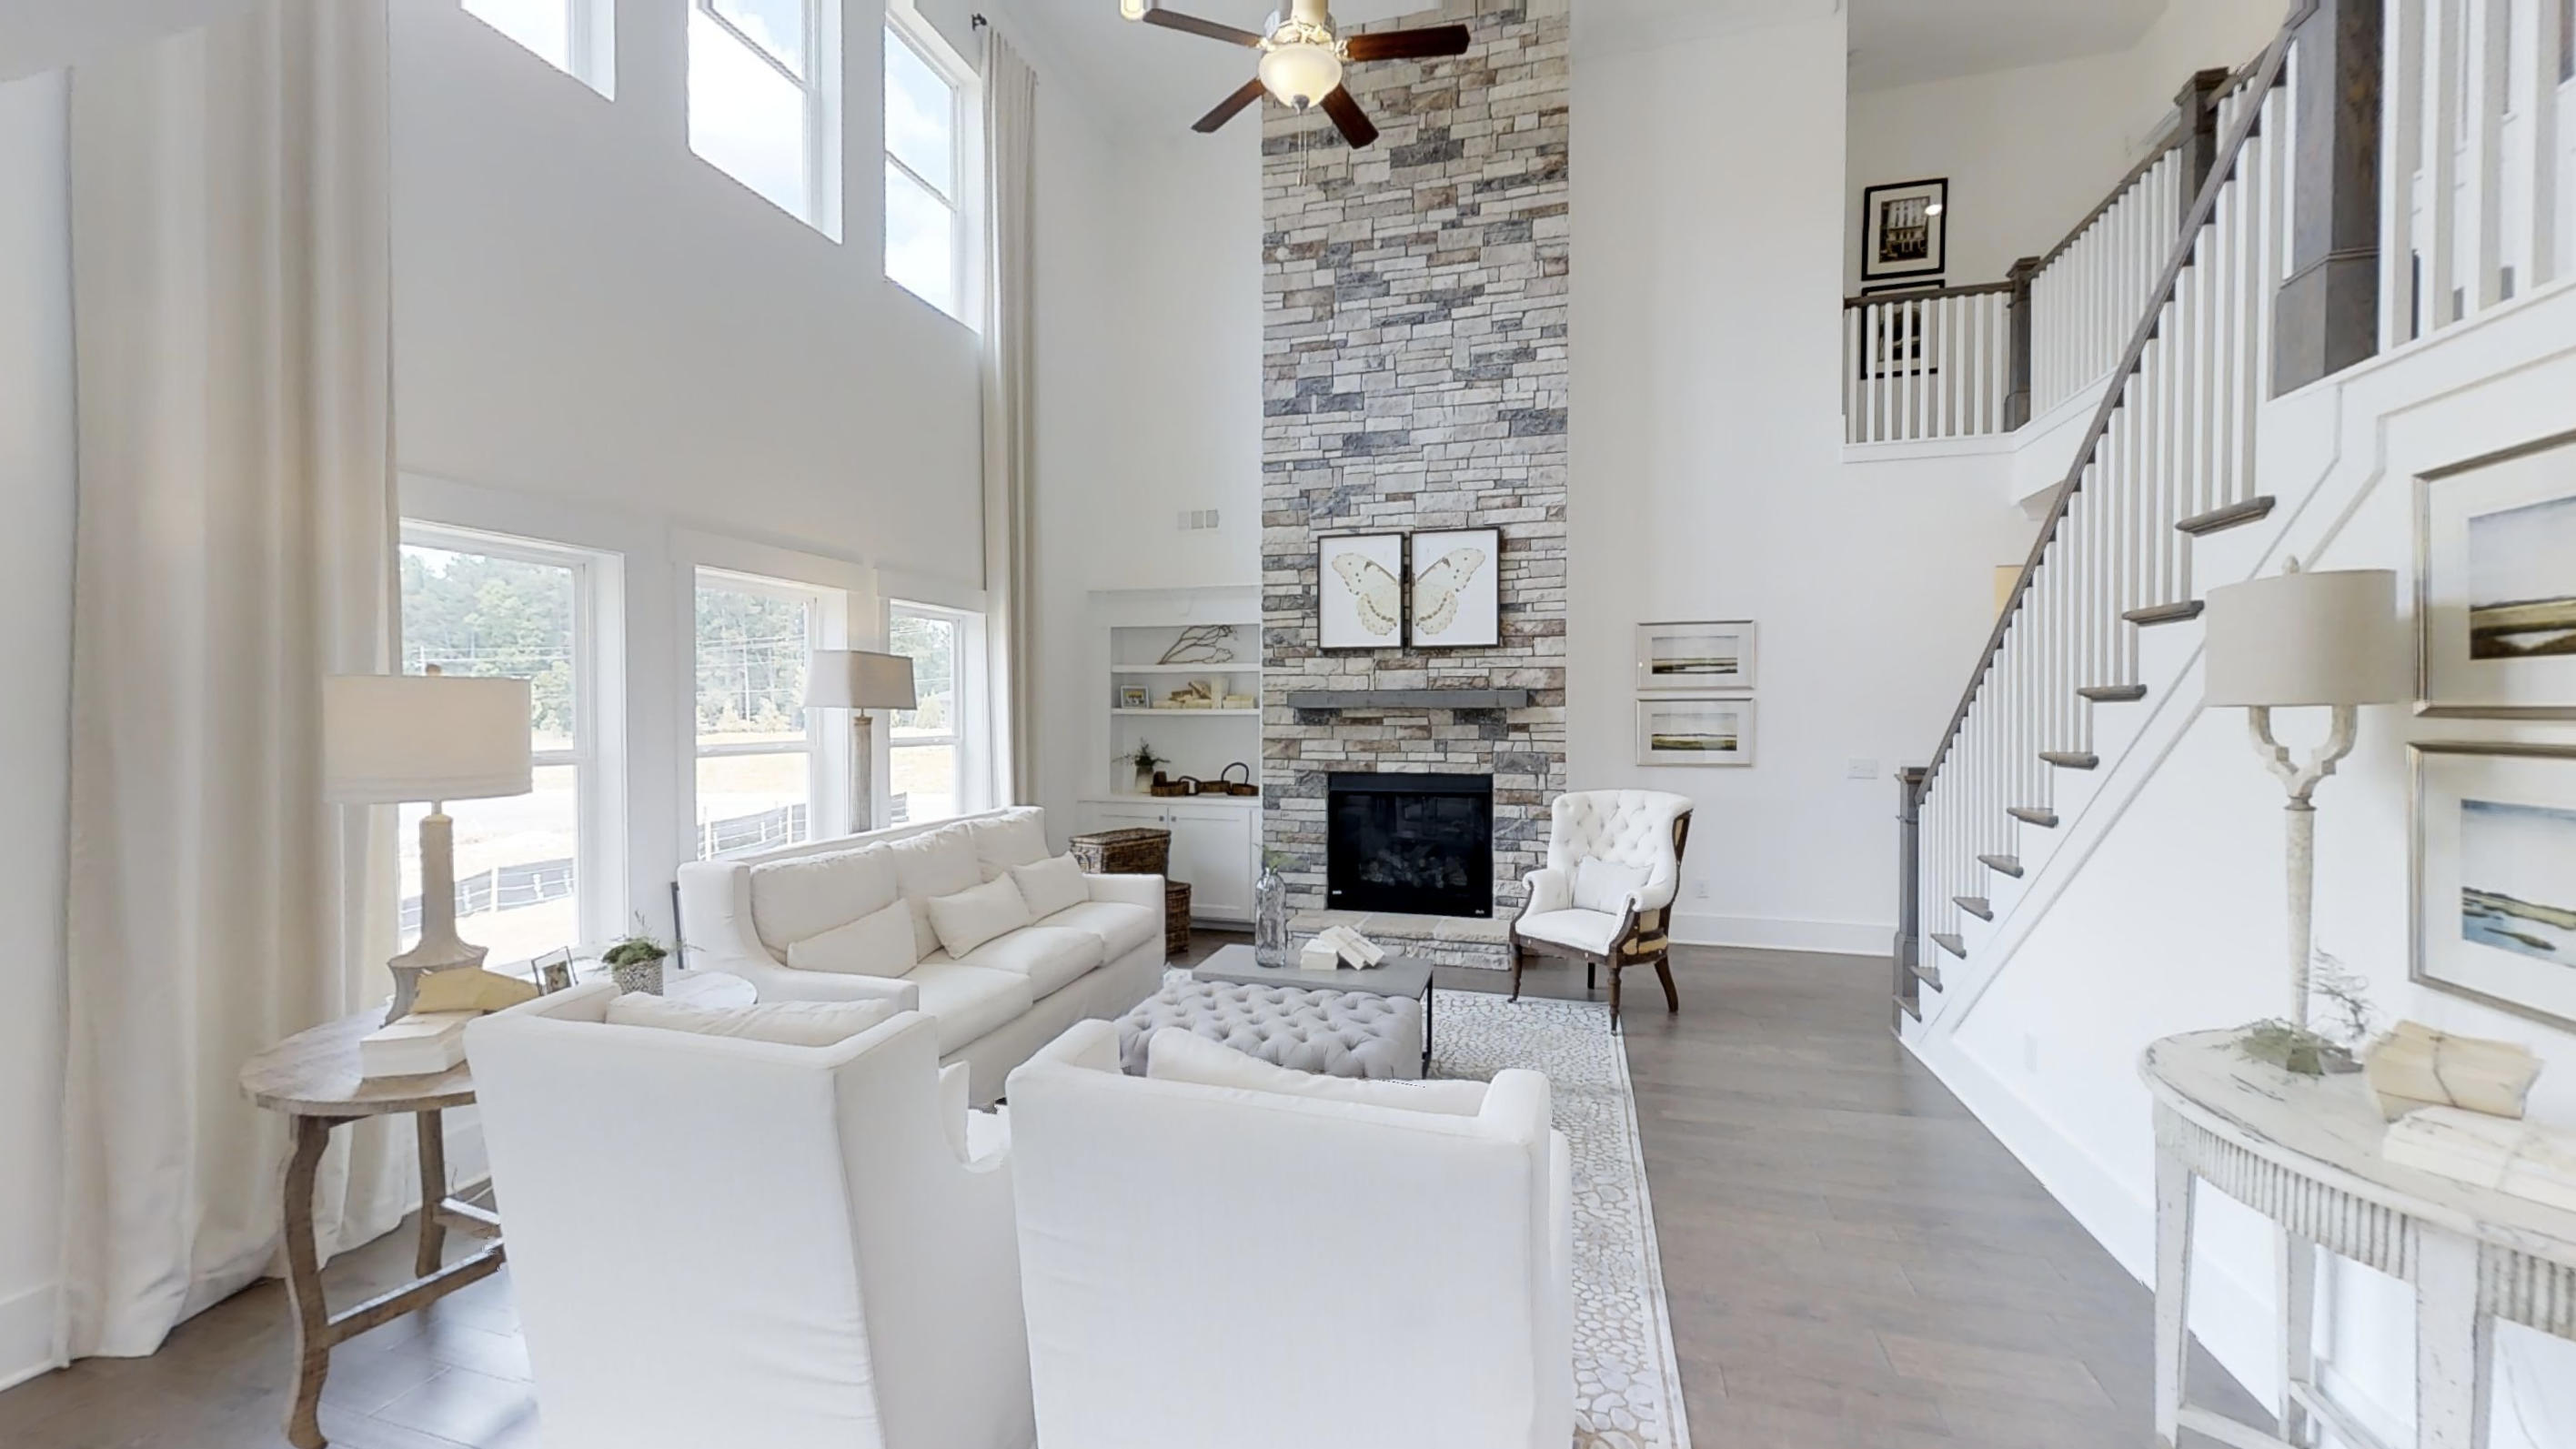 Paran Homes hosting agent luncheon in new Kennesaw model home